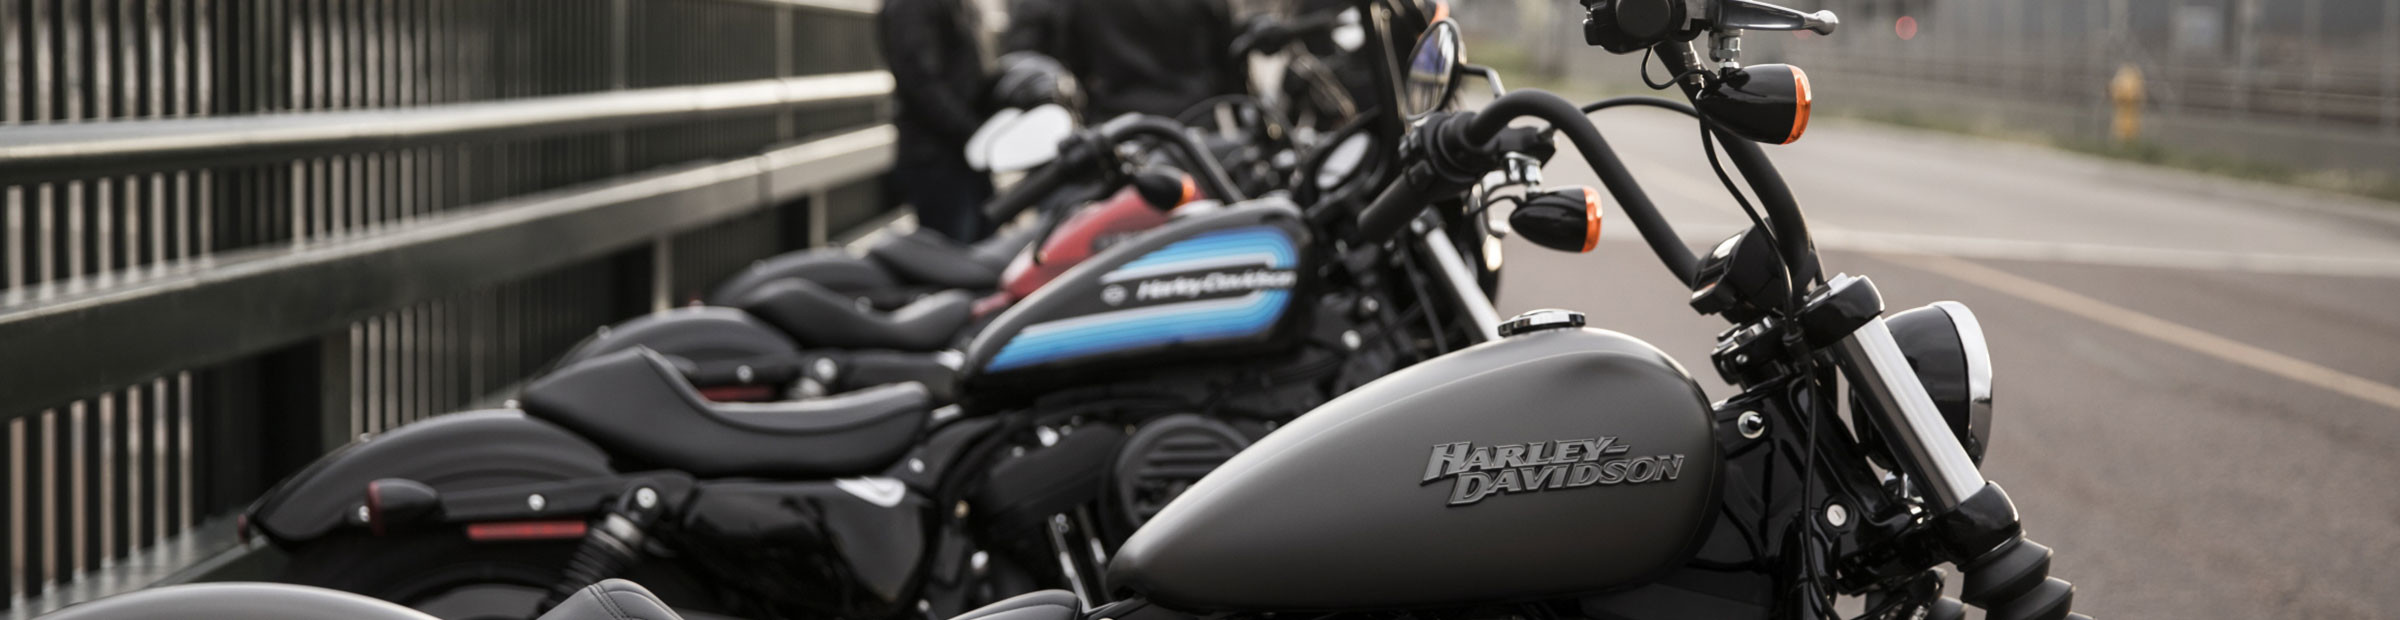 Value Your Trade at Rubber City Harley-Davidson®